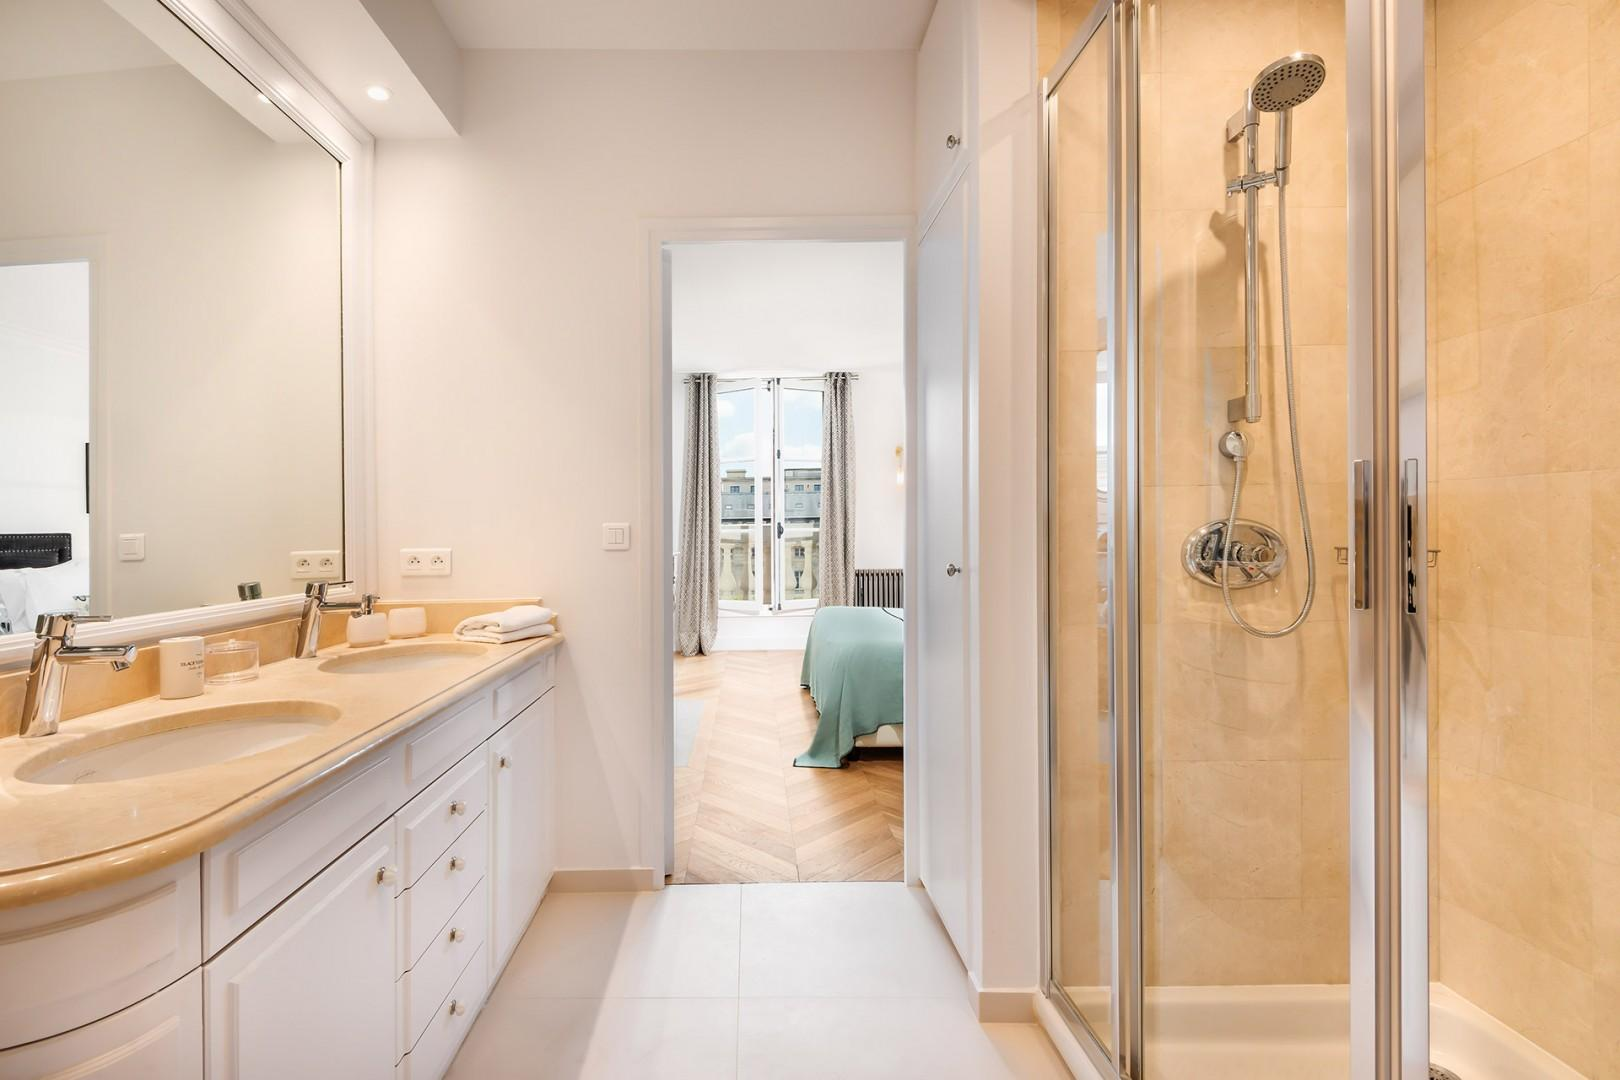 Start your day with an energizing shower in this sleek space.